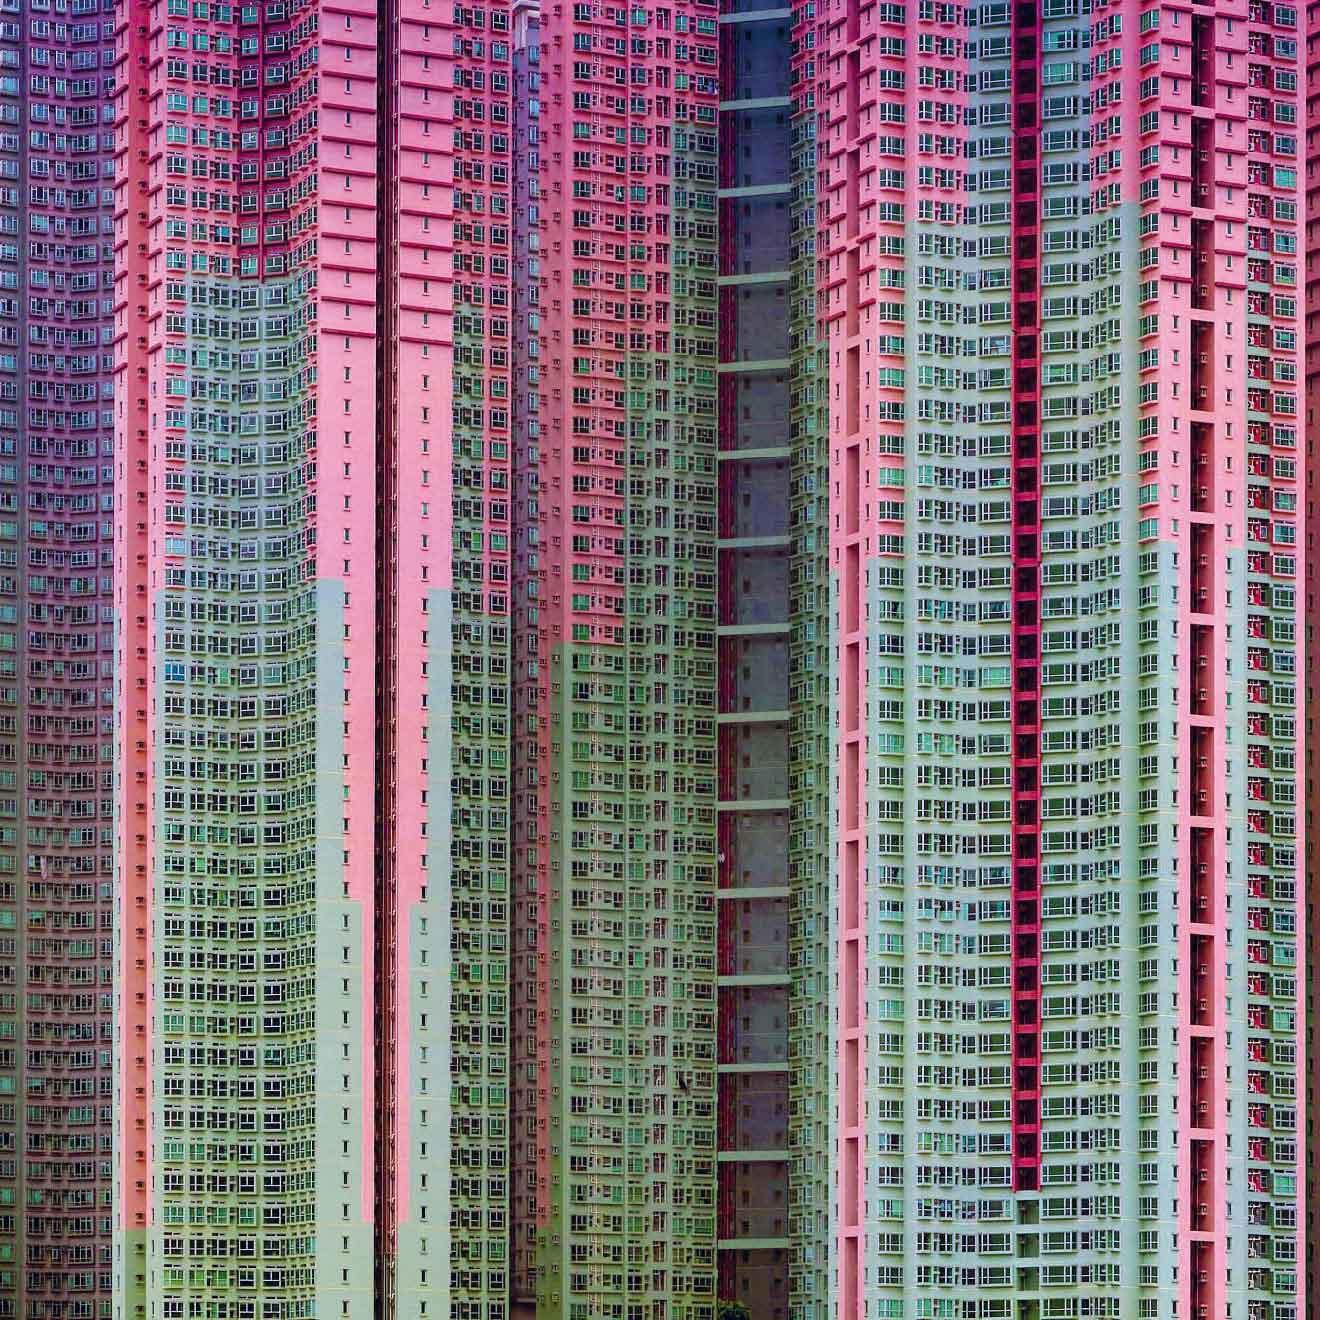 Photography from Weapons of Reason: Megacities - image 2